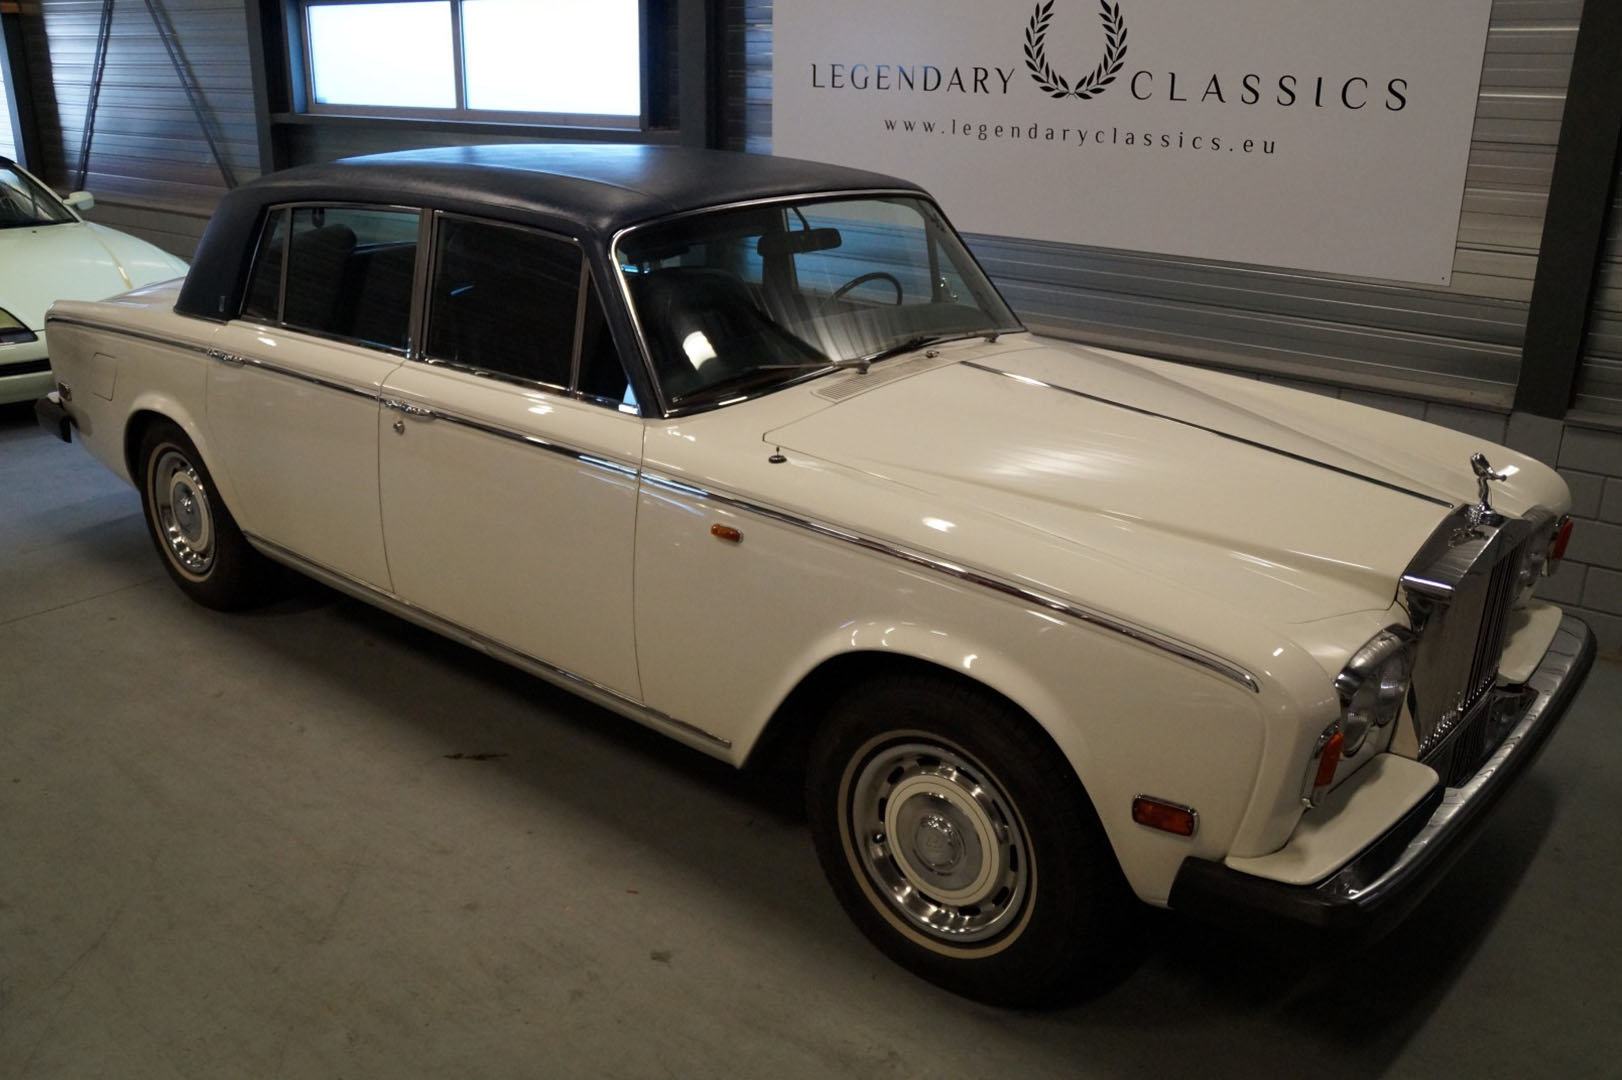 Buy this Rolls Royce   at Legendary Classics